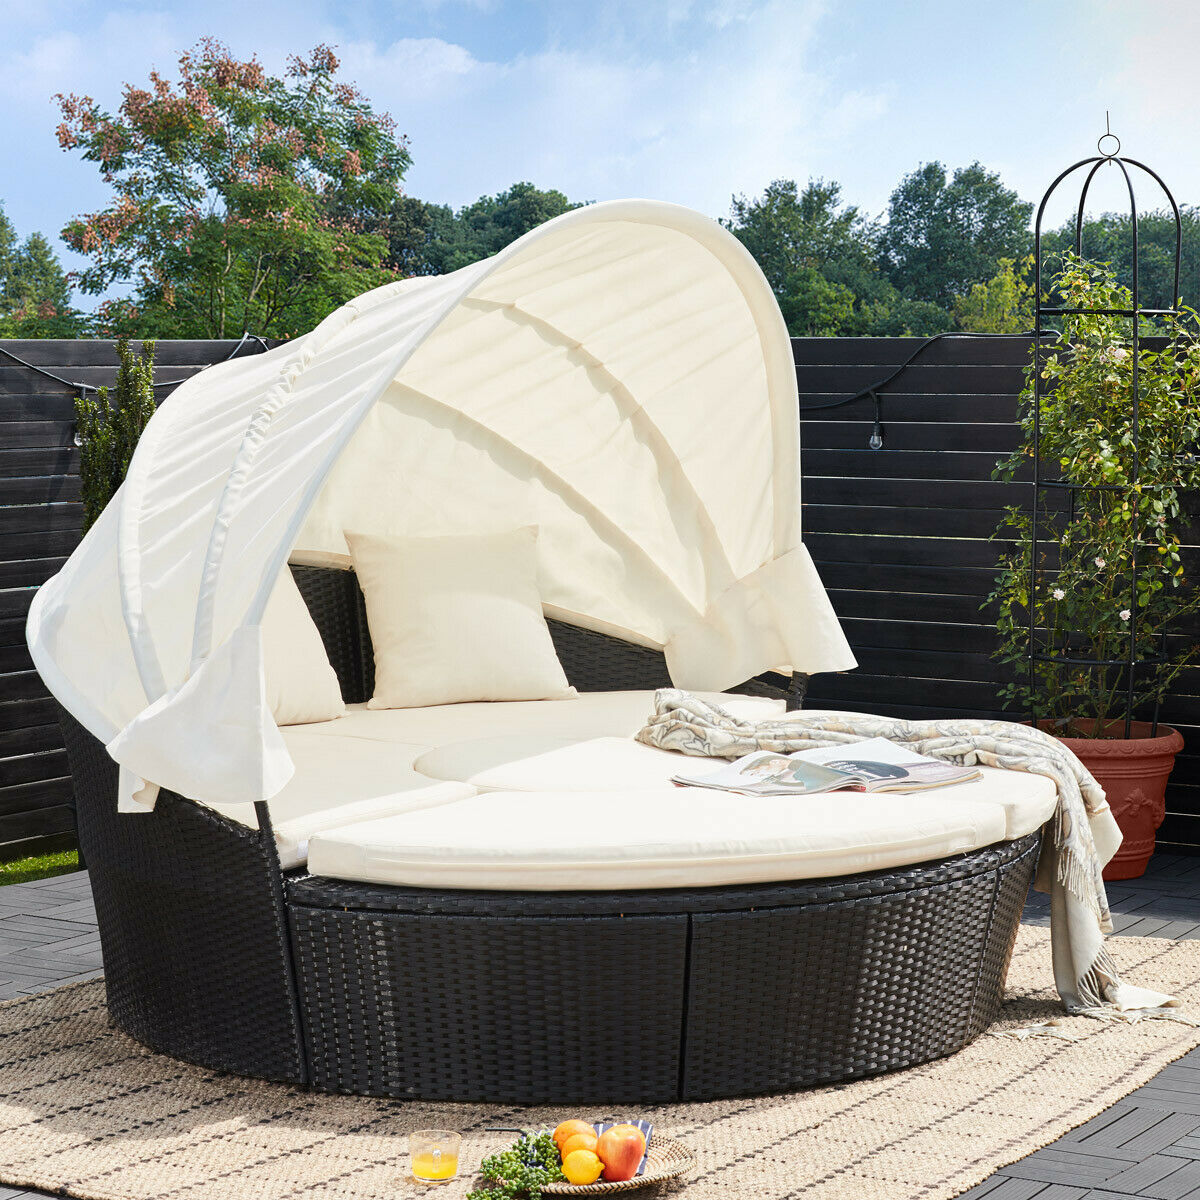 sonneninsel rattan lounge gartenm bel sonnenliege sitzgruppe gartenliege liege eur 319 00. Black Bedroom Furniture Sets. Home Design Ideas